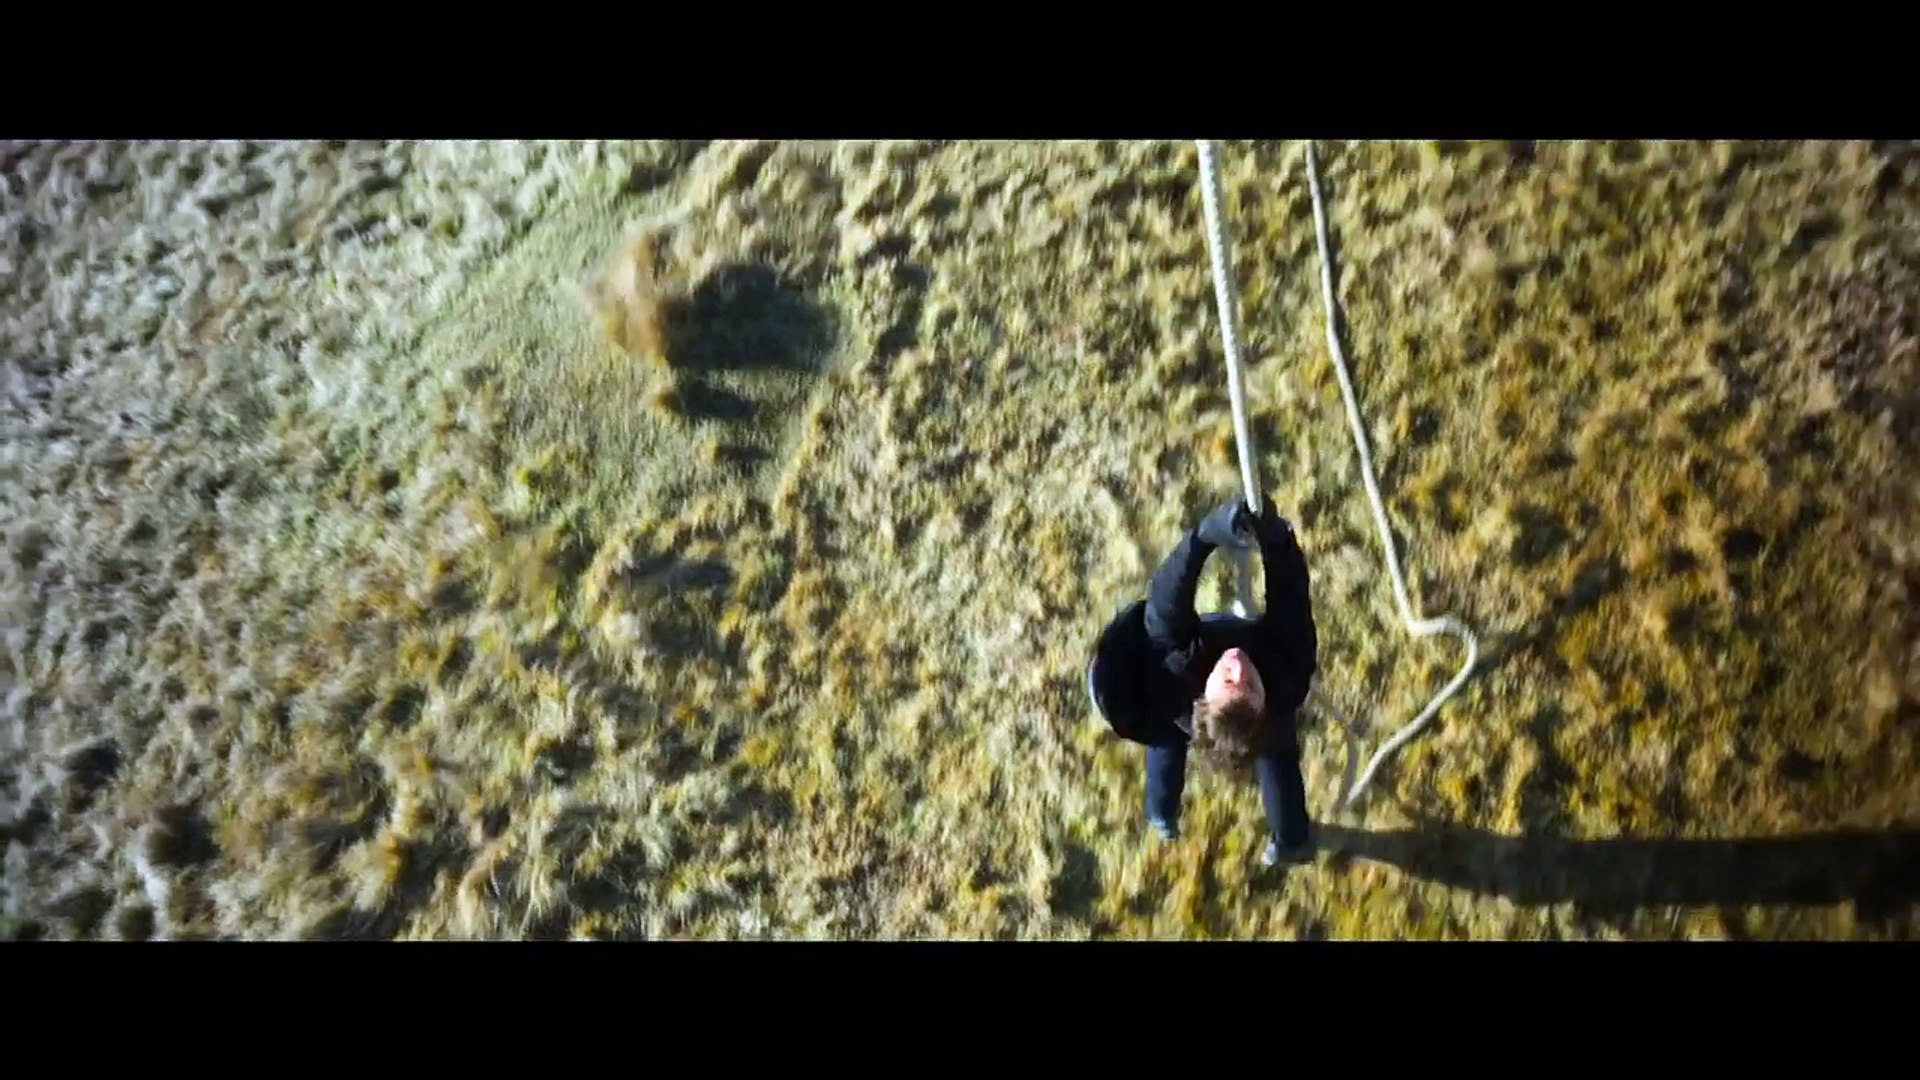 Mission- Impossible - Fallout Super Bowl TV Spot - Movieclips Trailers